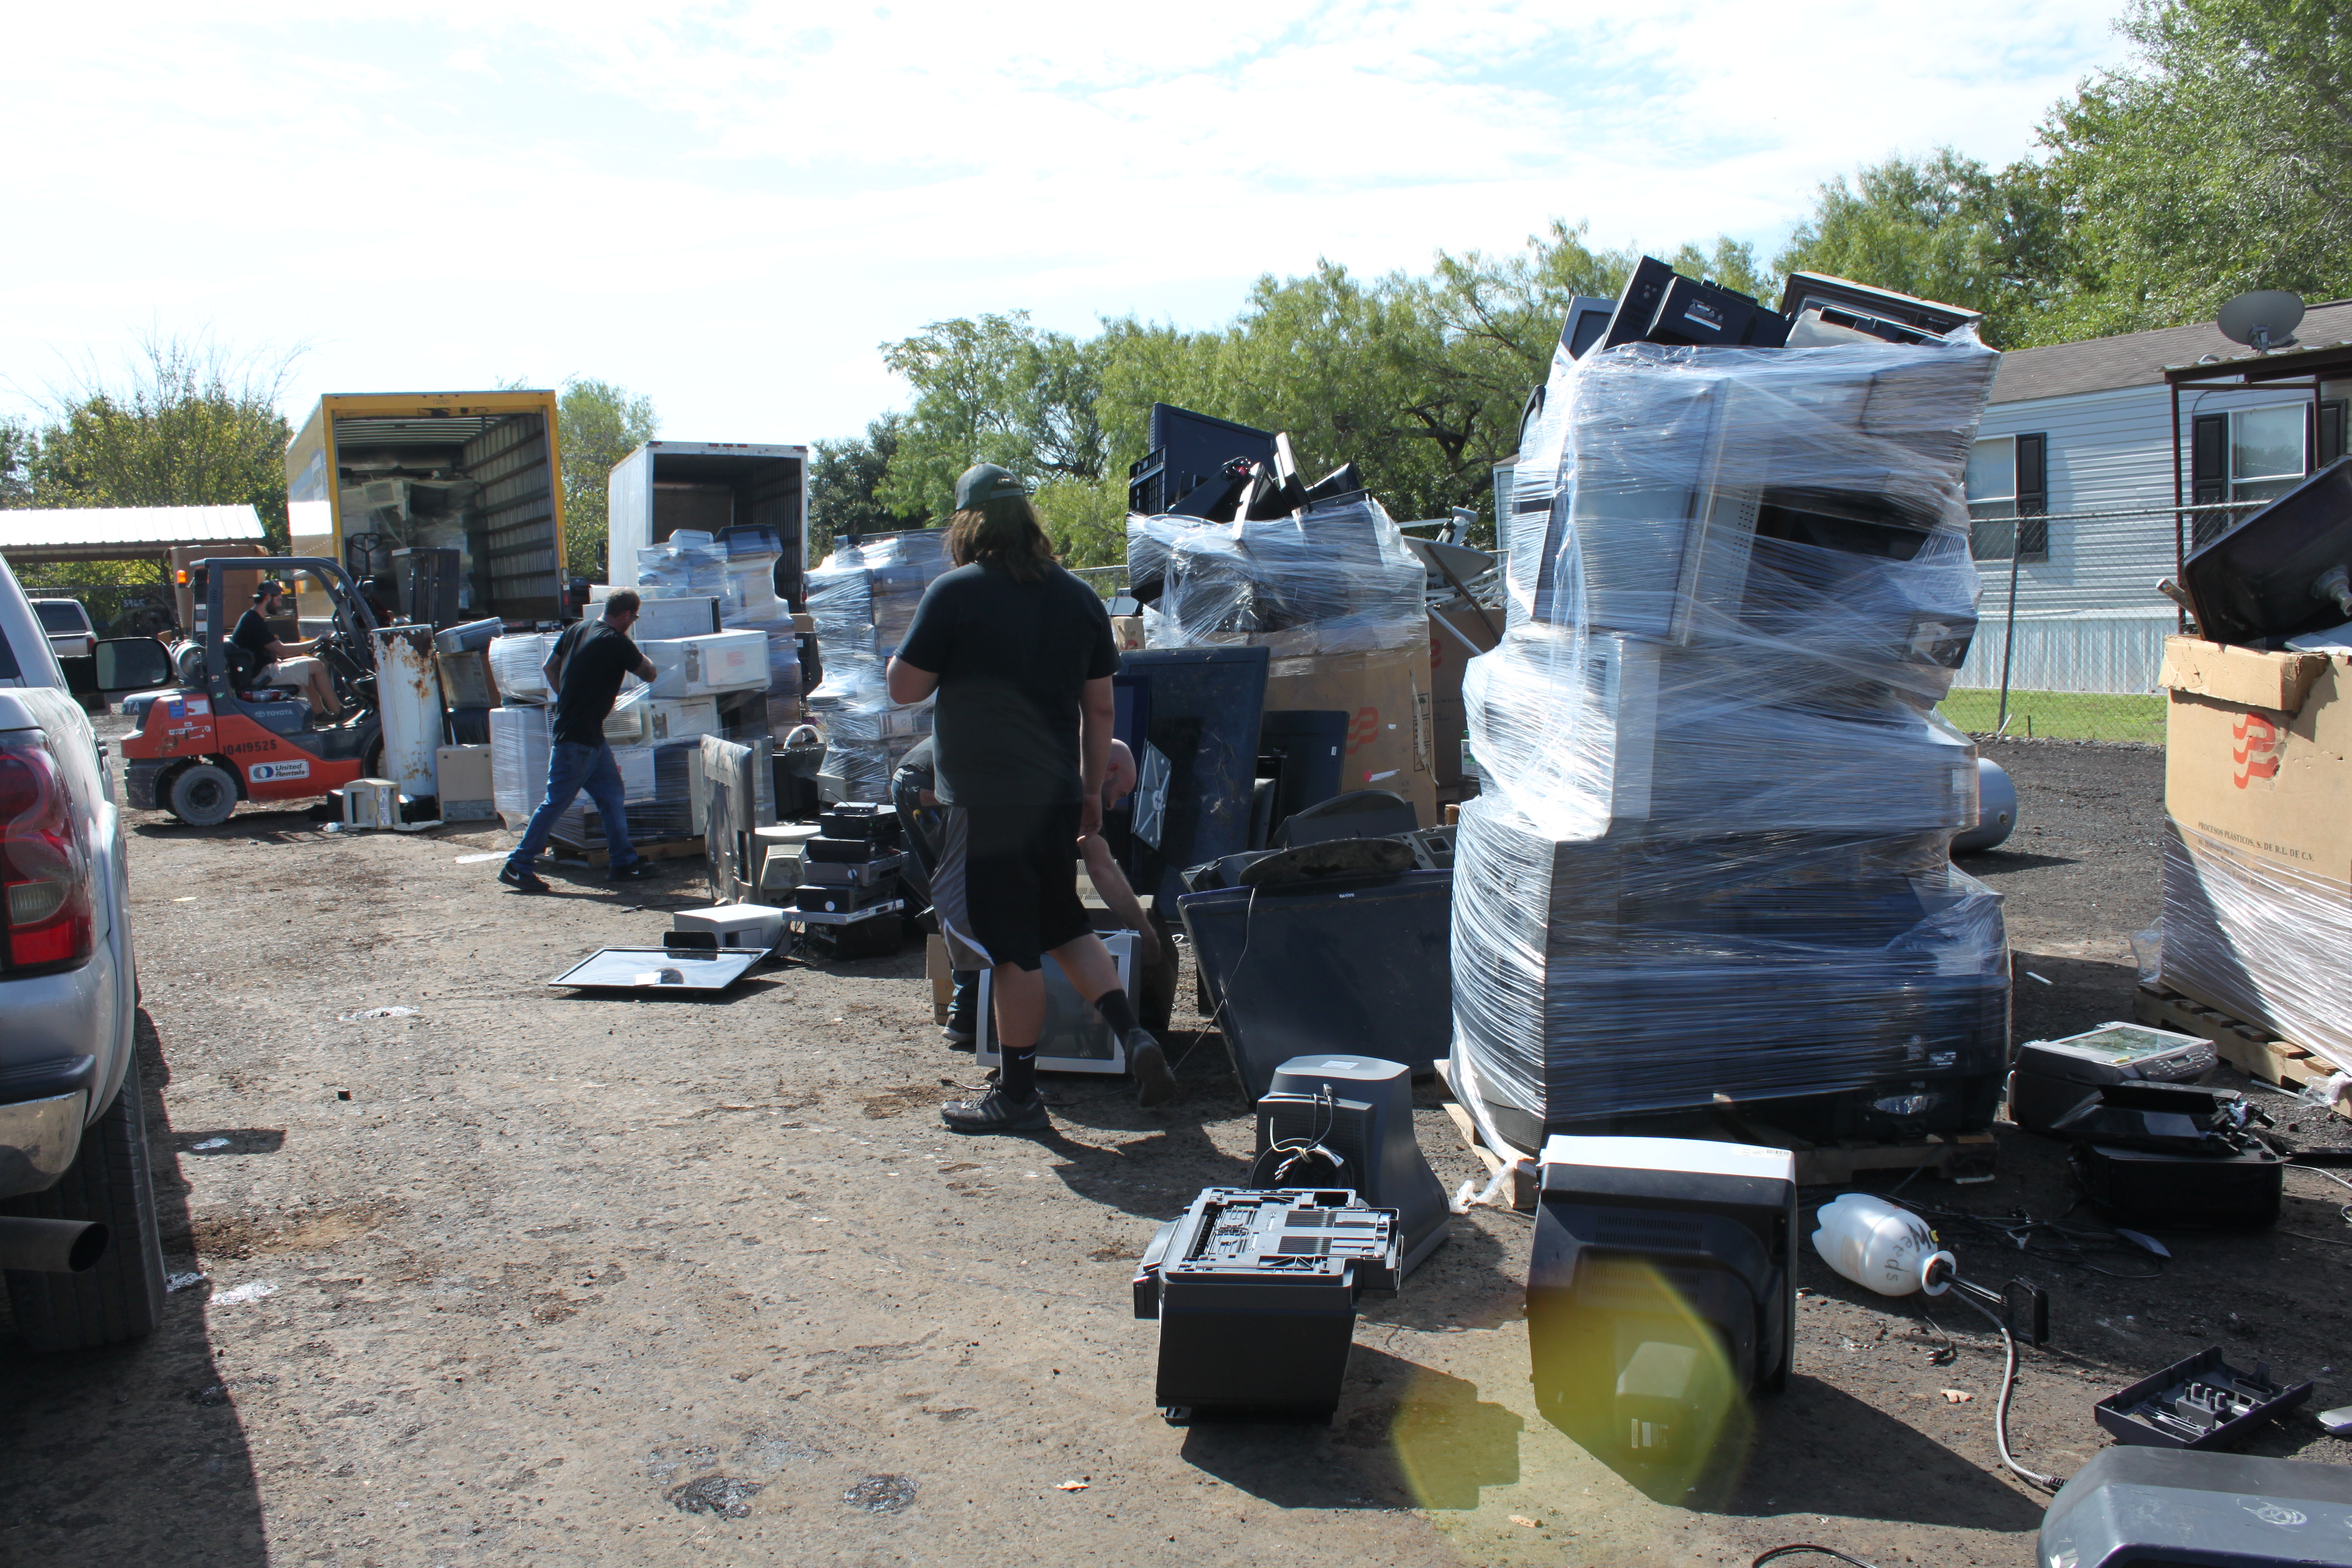 Used electronics are collected as part of the Wilson County Household Hazardous Waste fall 2019 collection event.